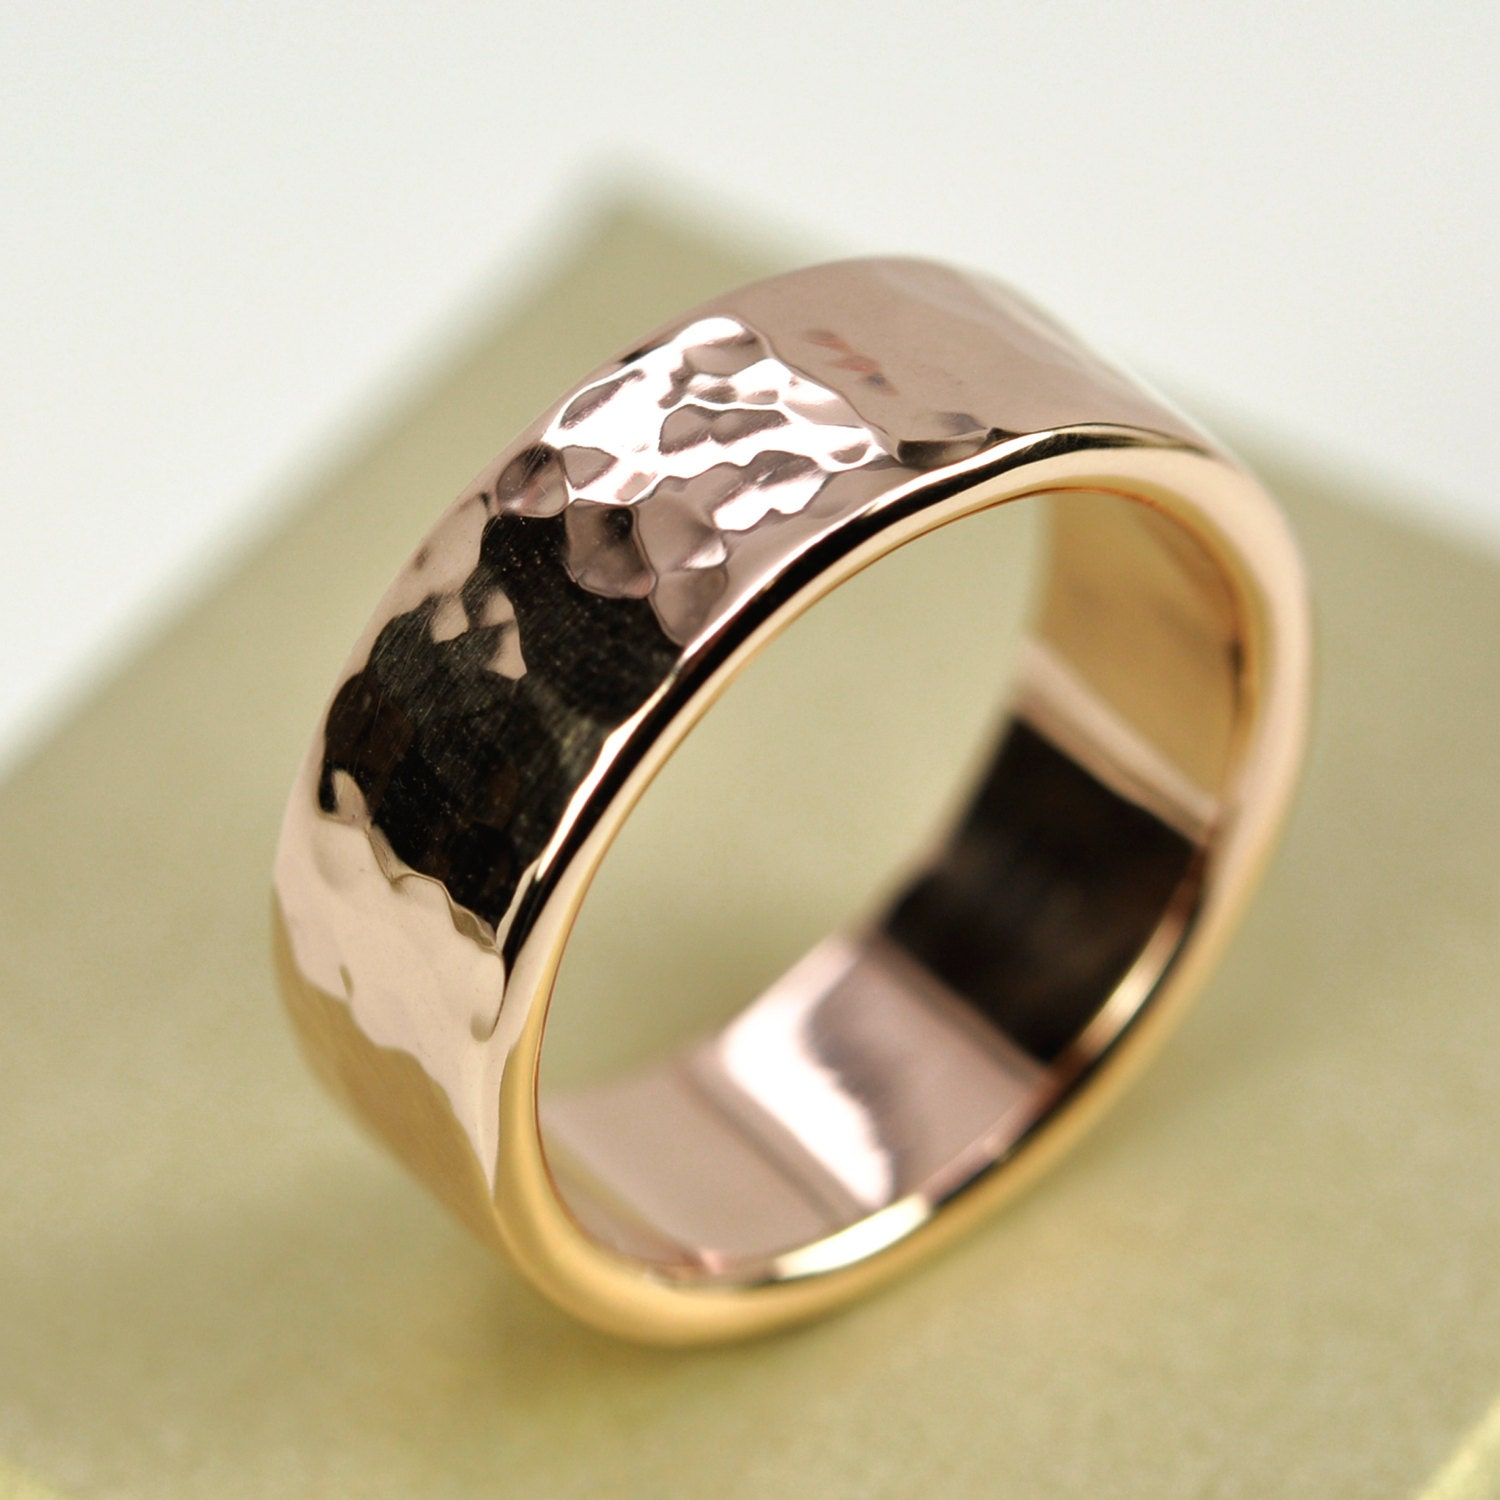 damascus ring inlay bands wedding hammered steel band and sleeve made pin with rose gold custom mens